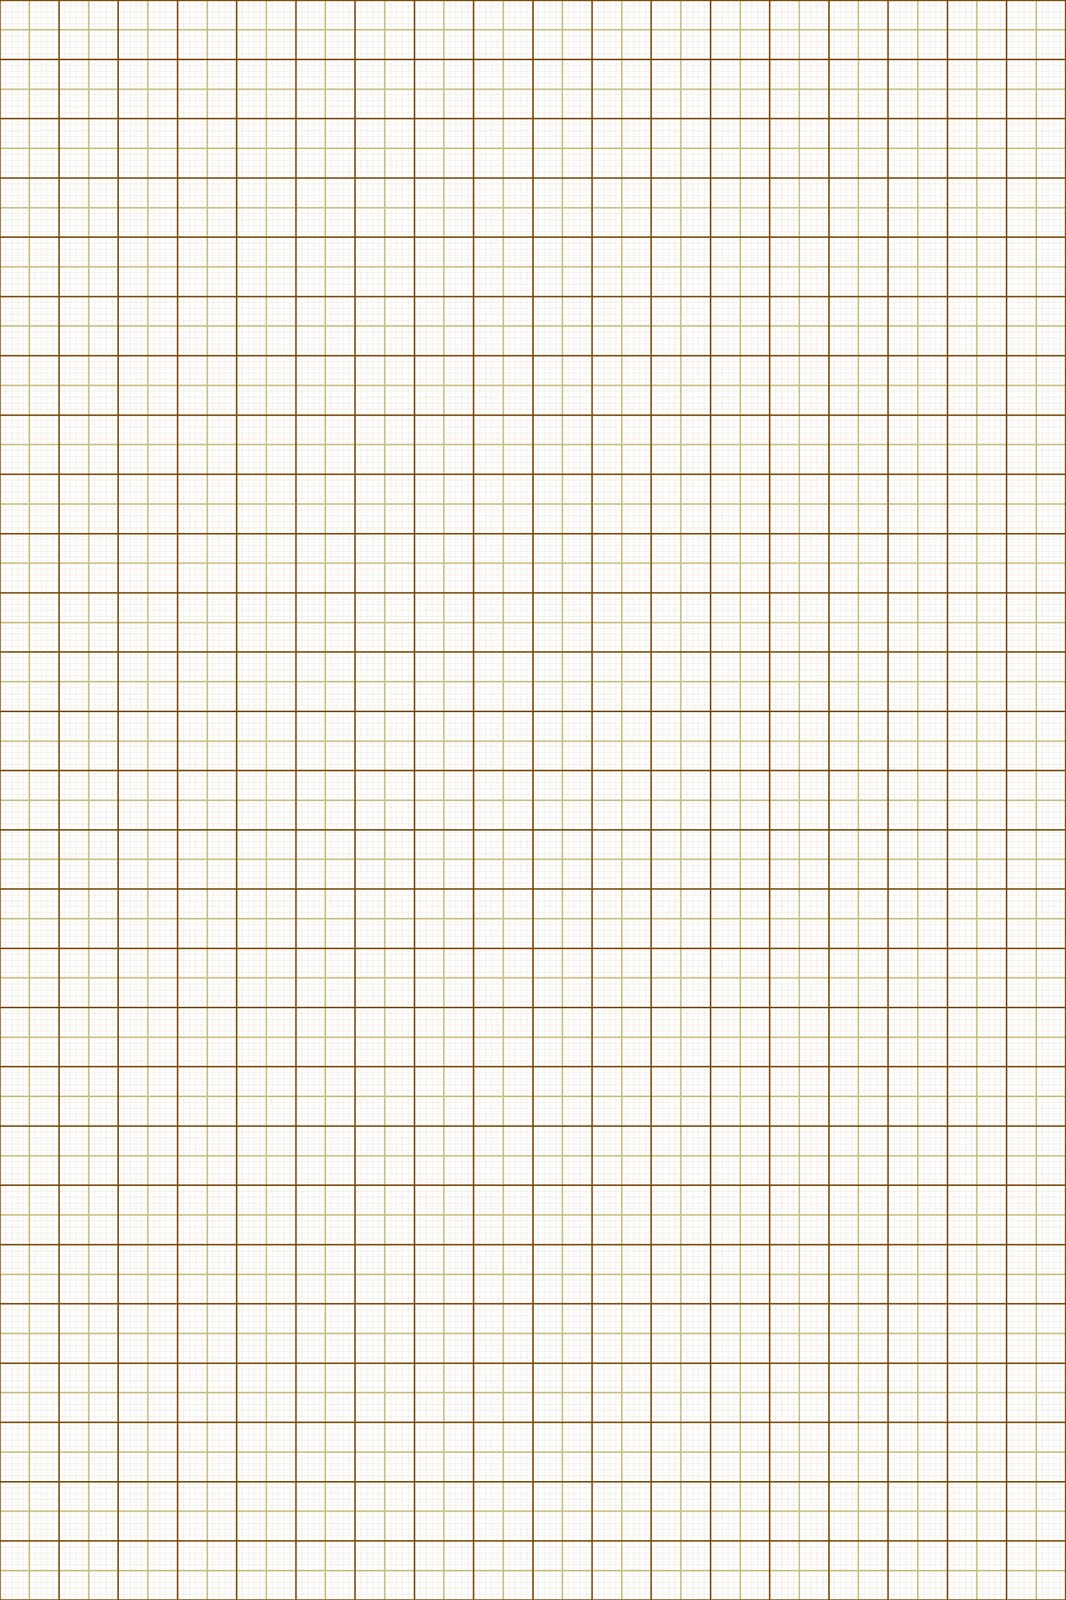 Template Of Graph Paper: Printable Full Page Graph Paper Grid ...